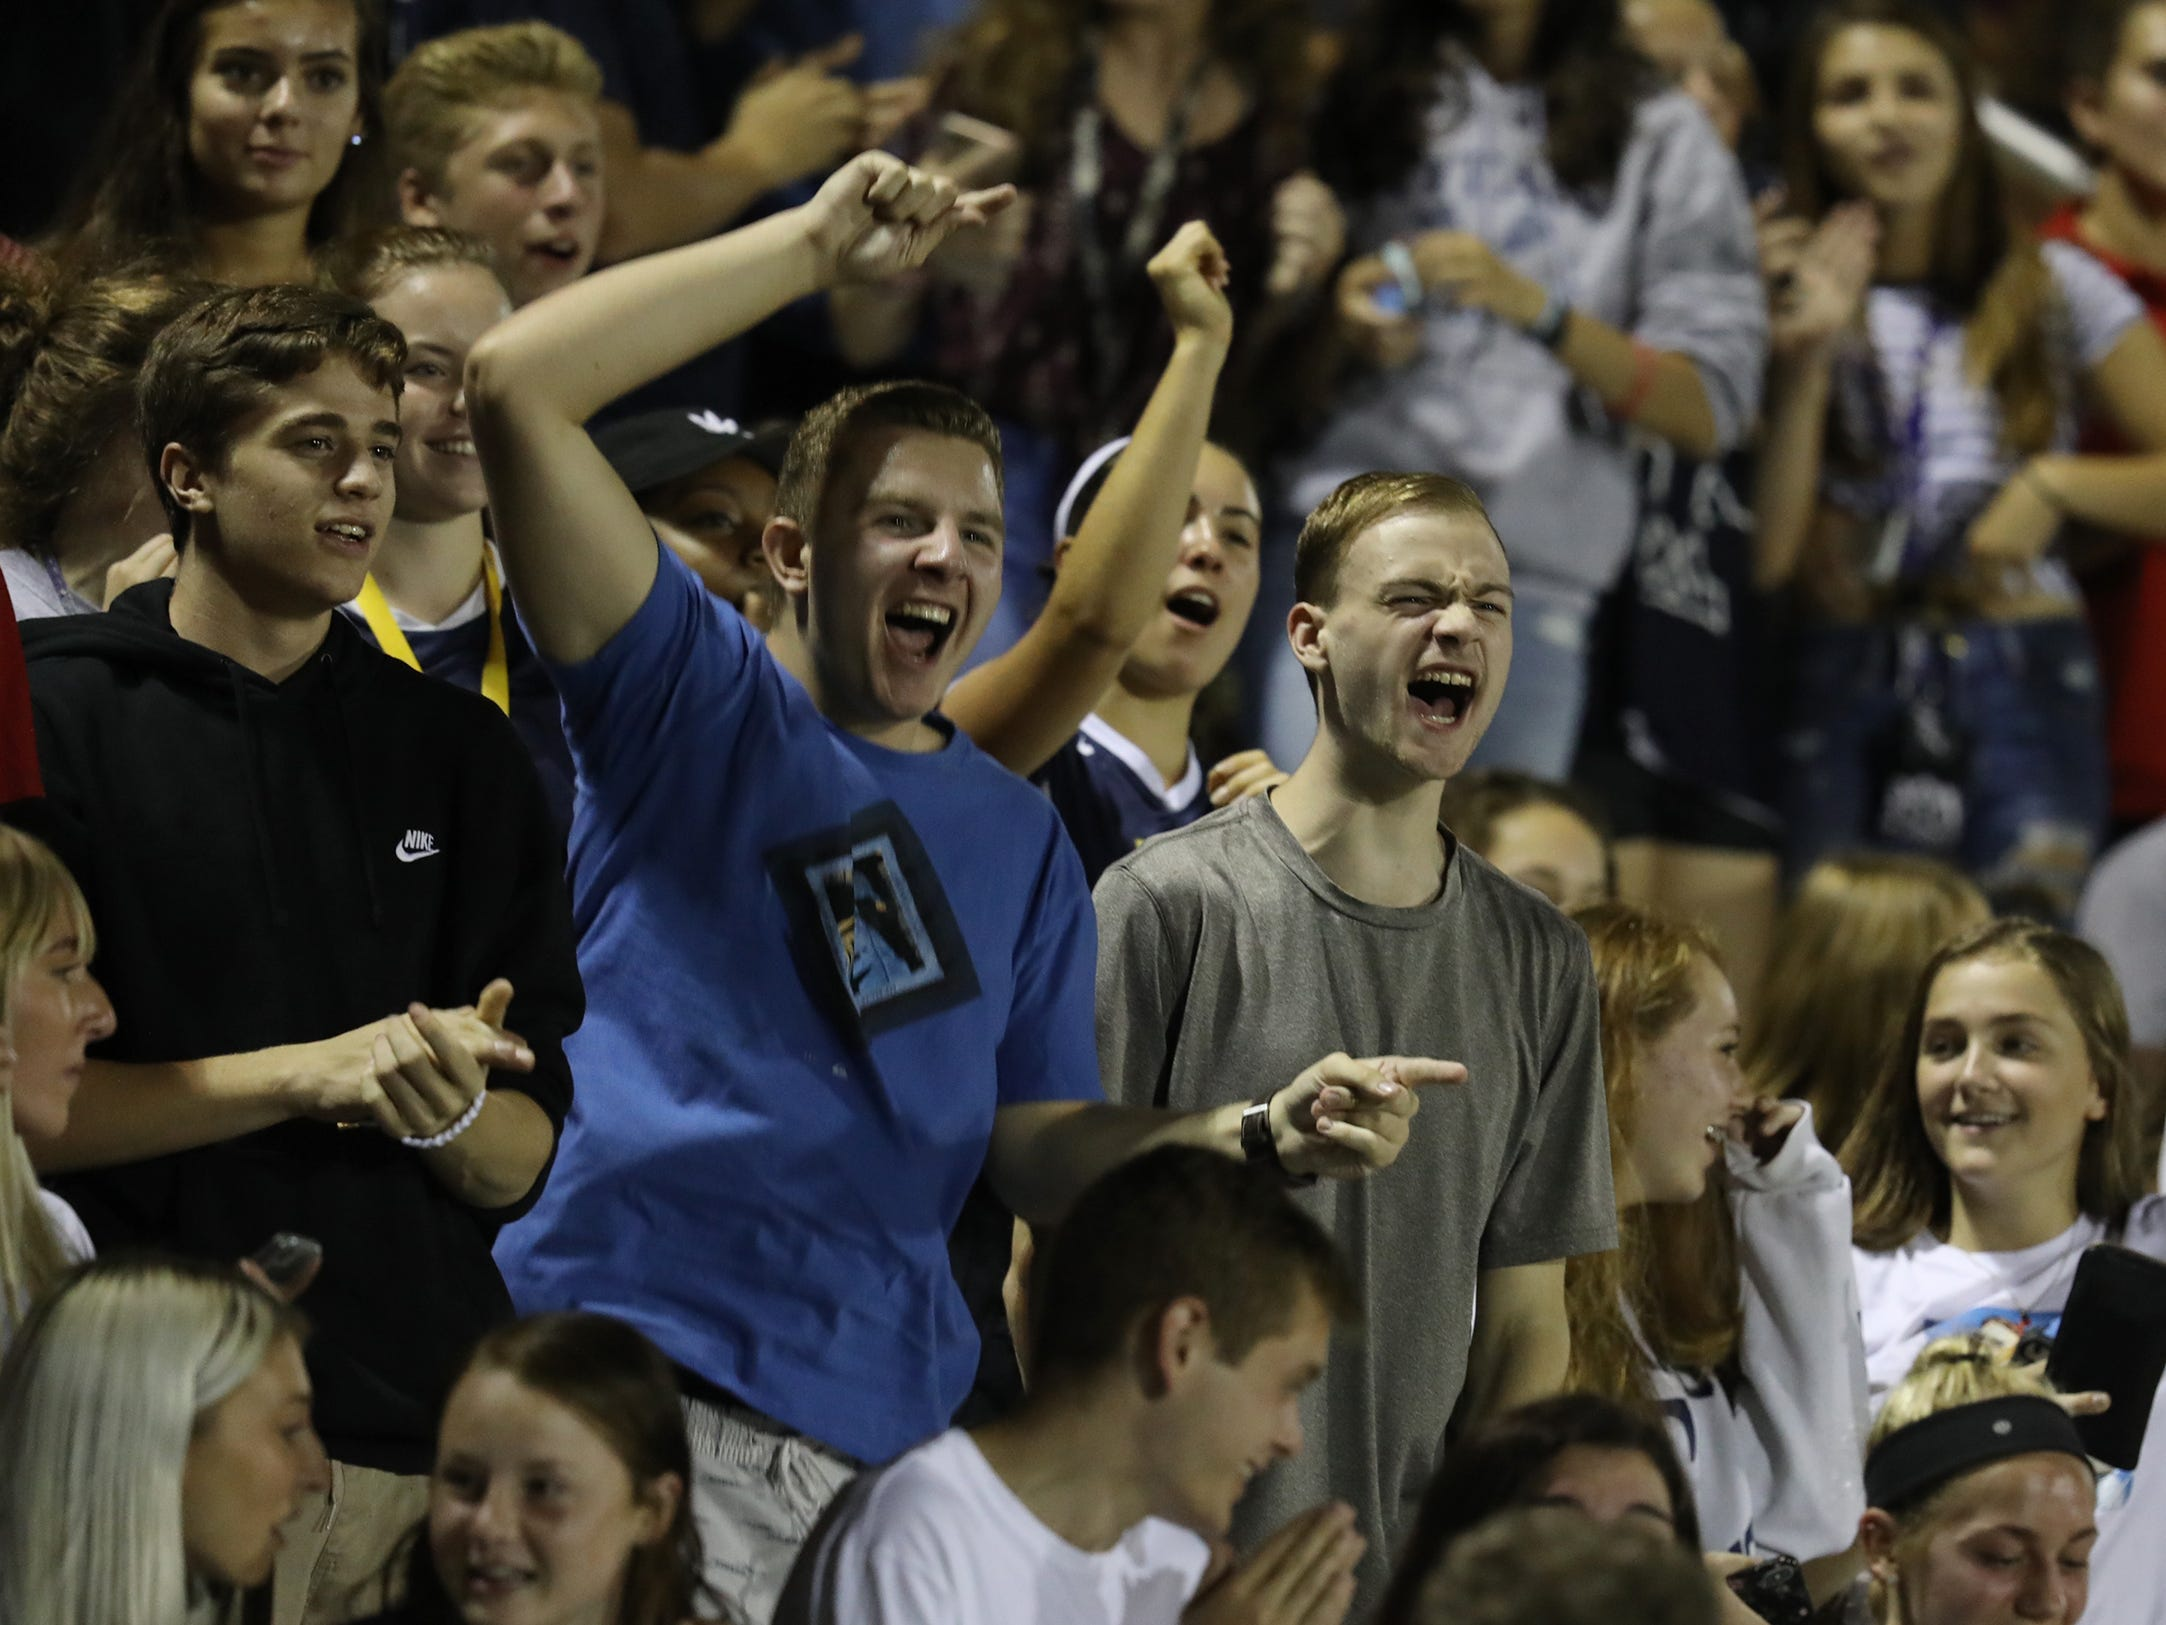 Webster Thomas student section errupts in cheers as their team scores.